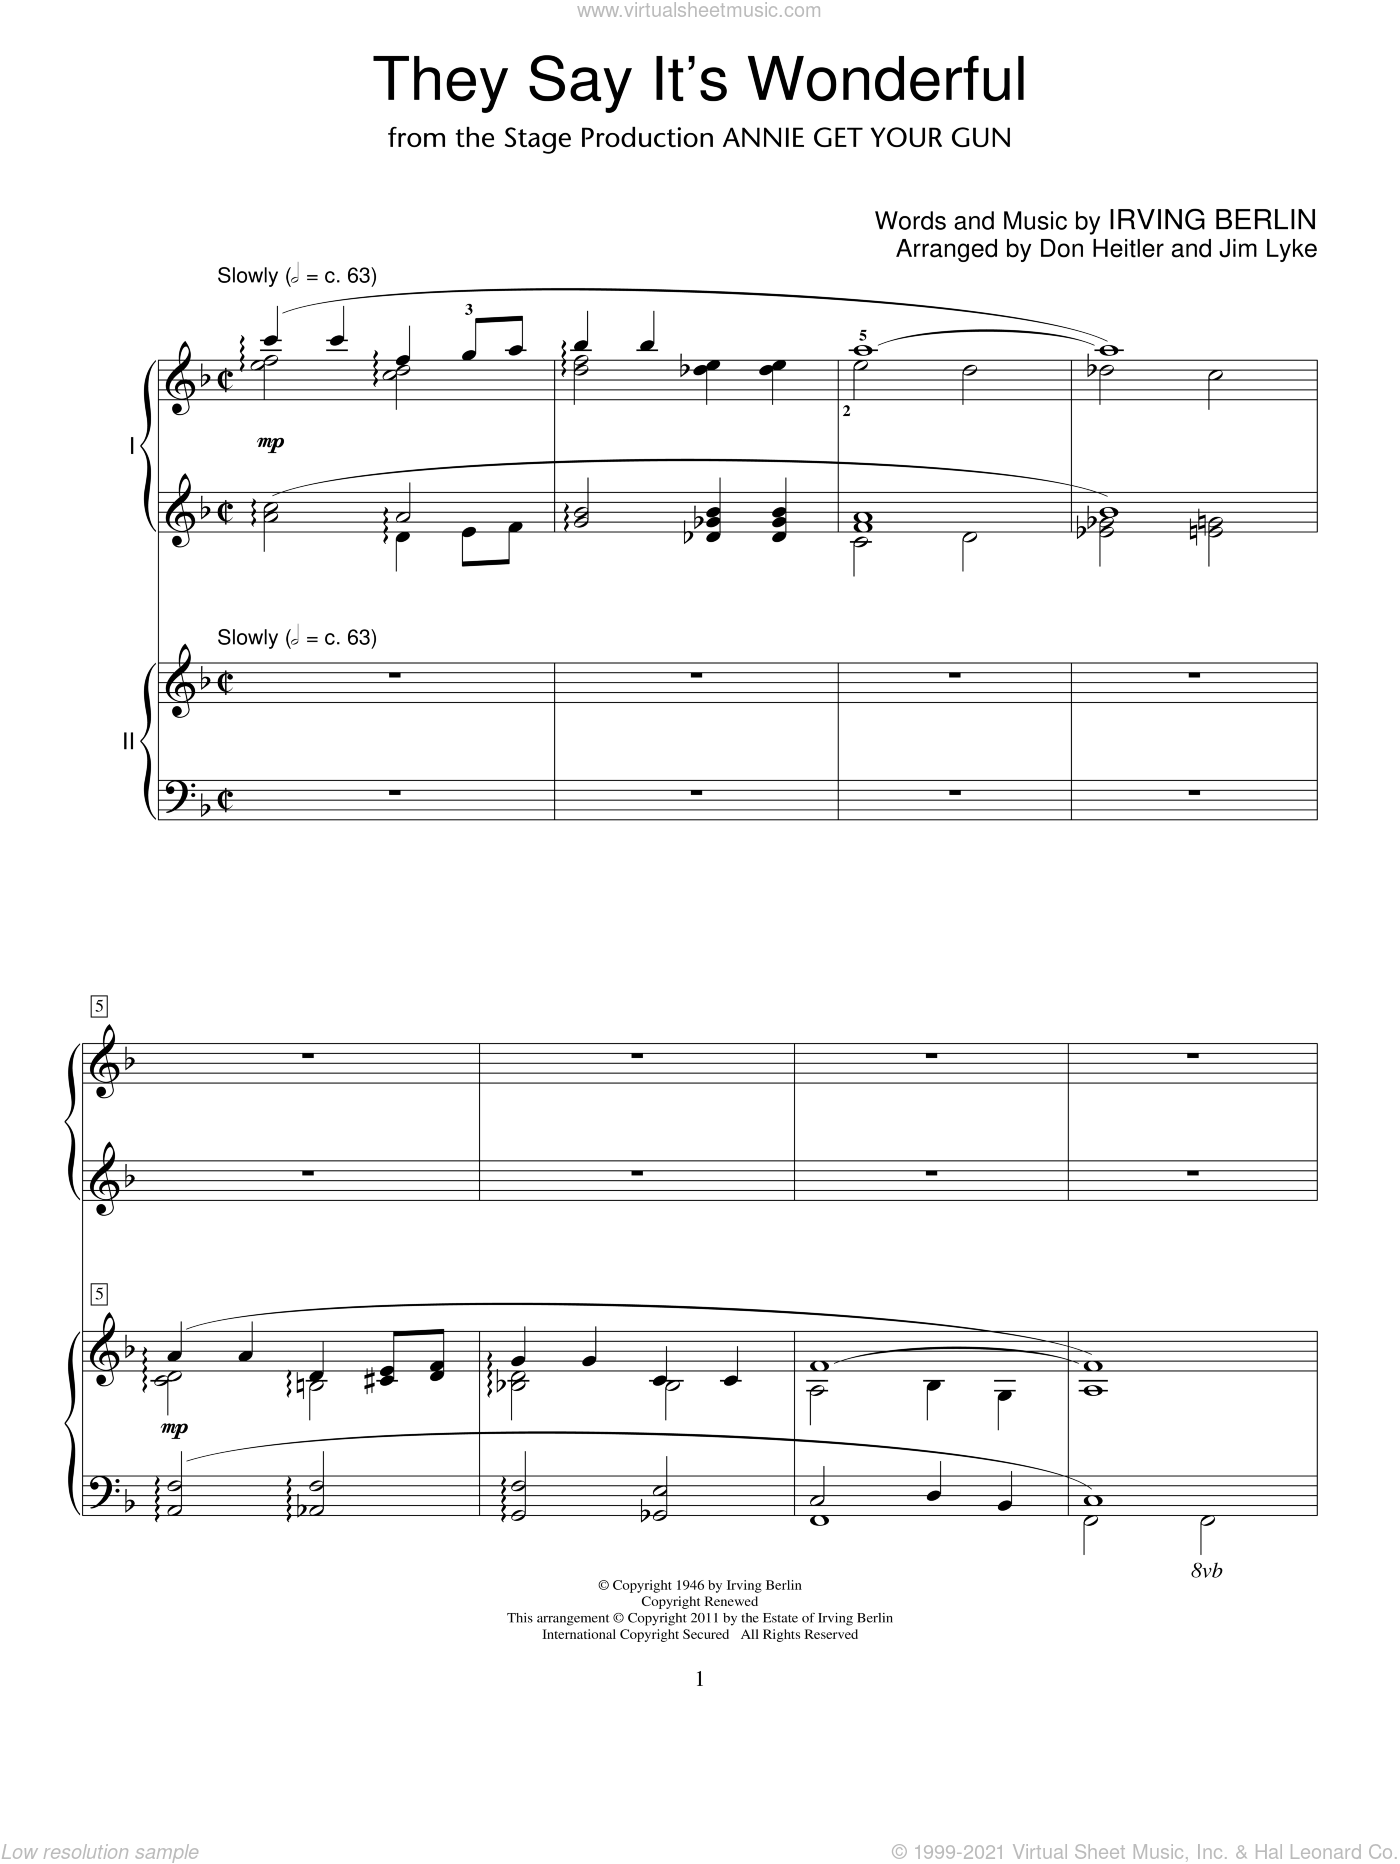 They Say It's Wonderful sheet music for two pianos by Irving Berlin and Annie Get Your Gun (Musical), intermediate duet